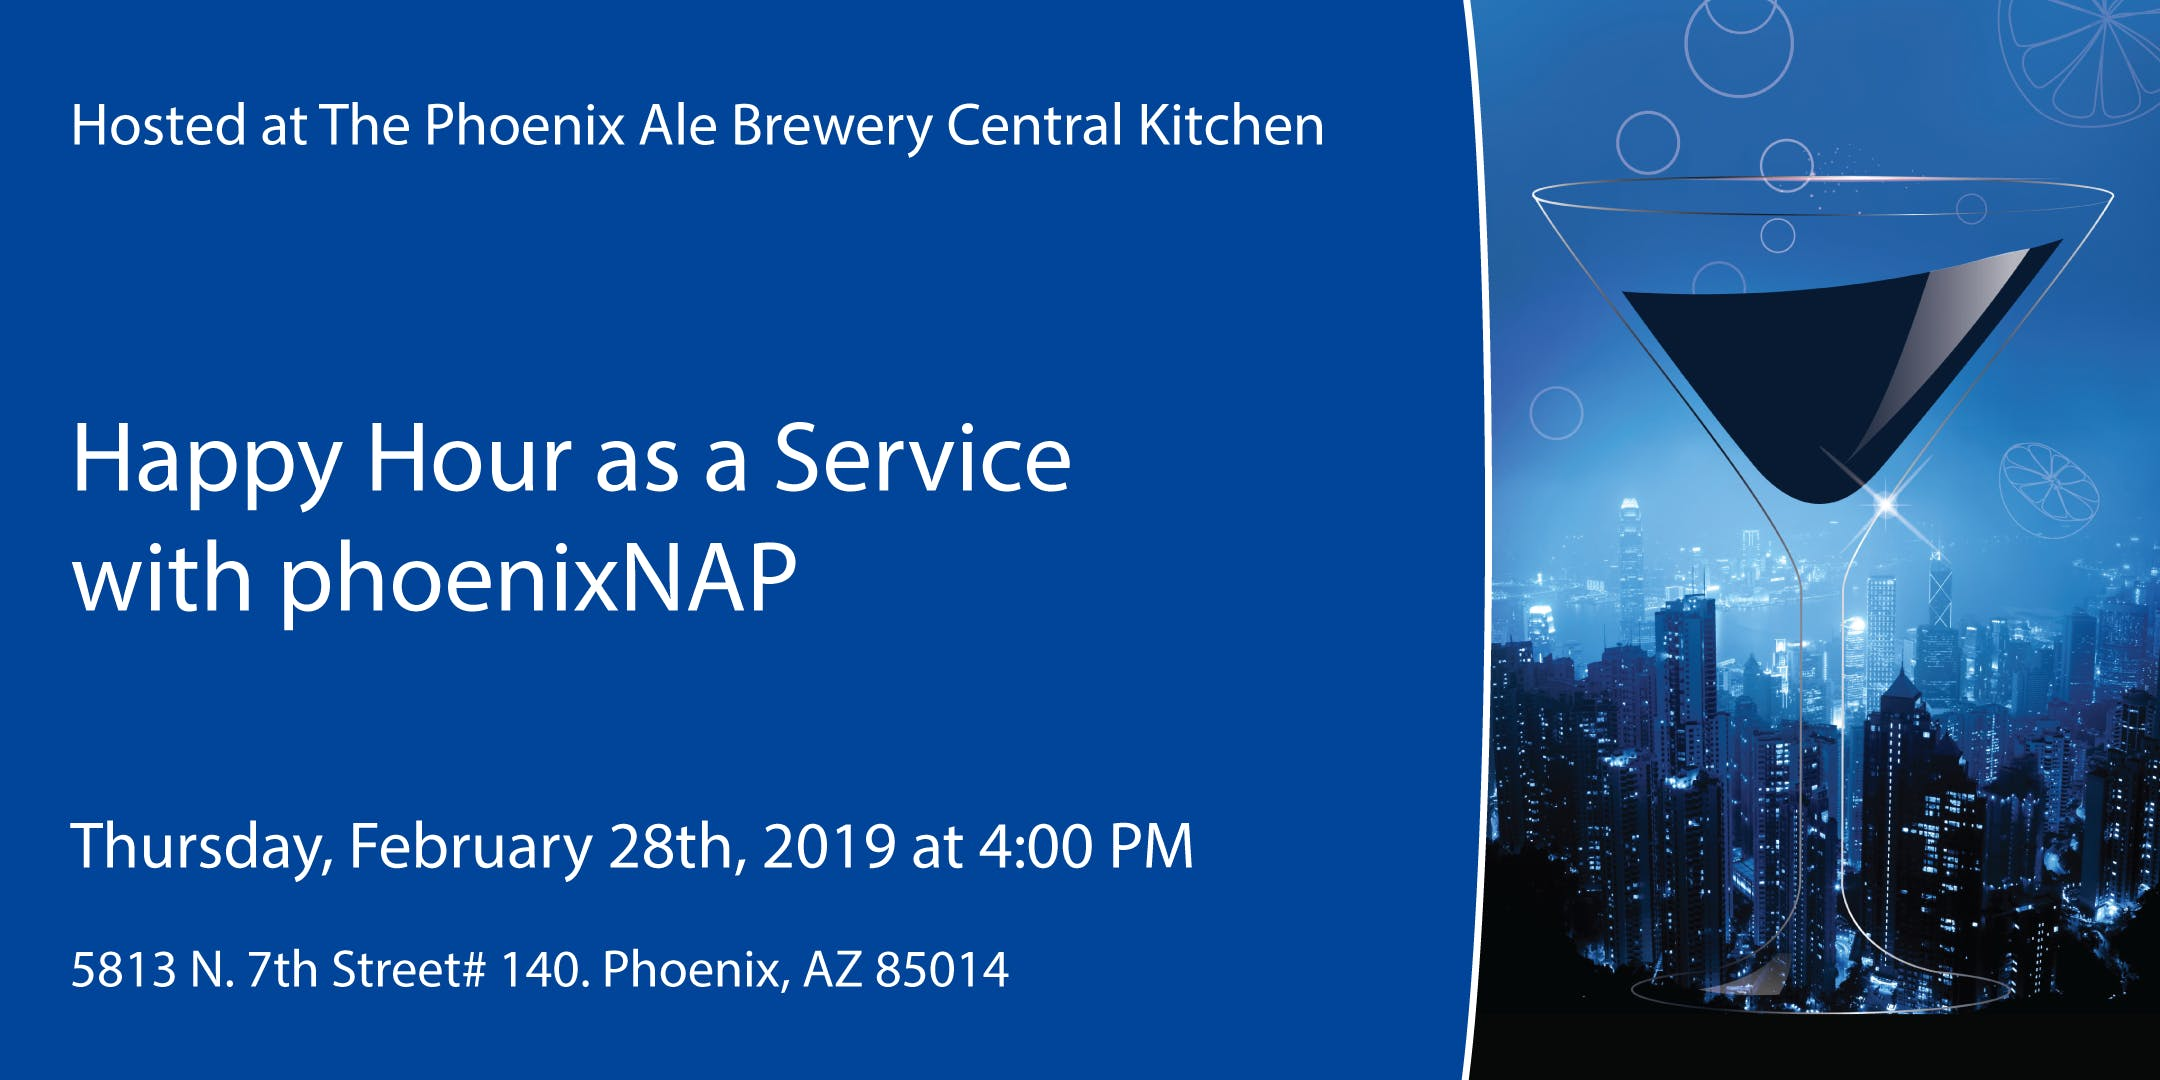 Happy Hour as a Service with phoenixNAP